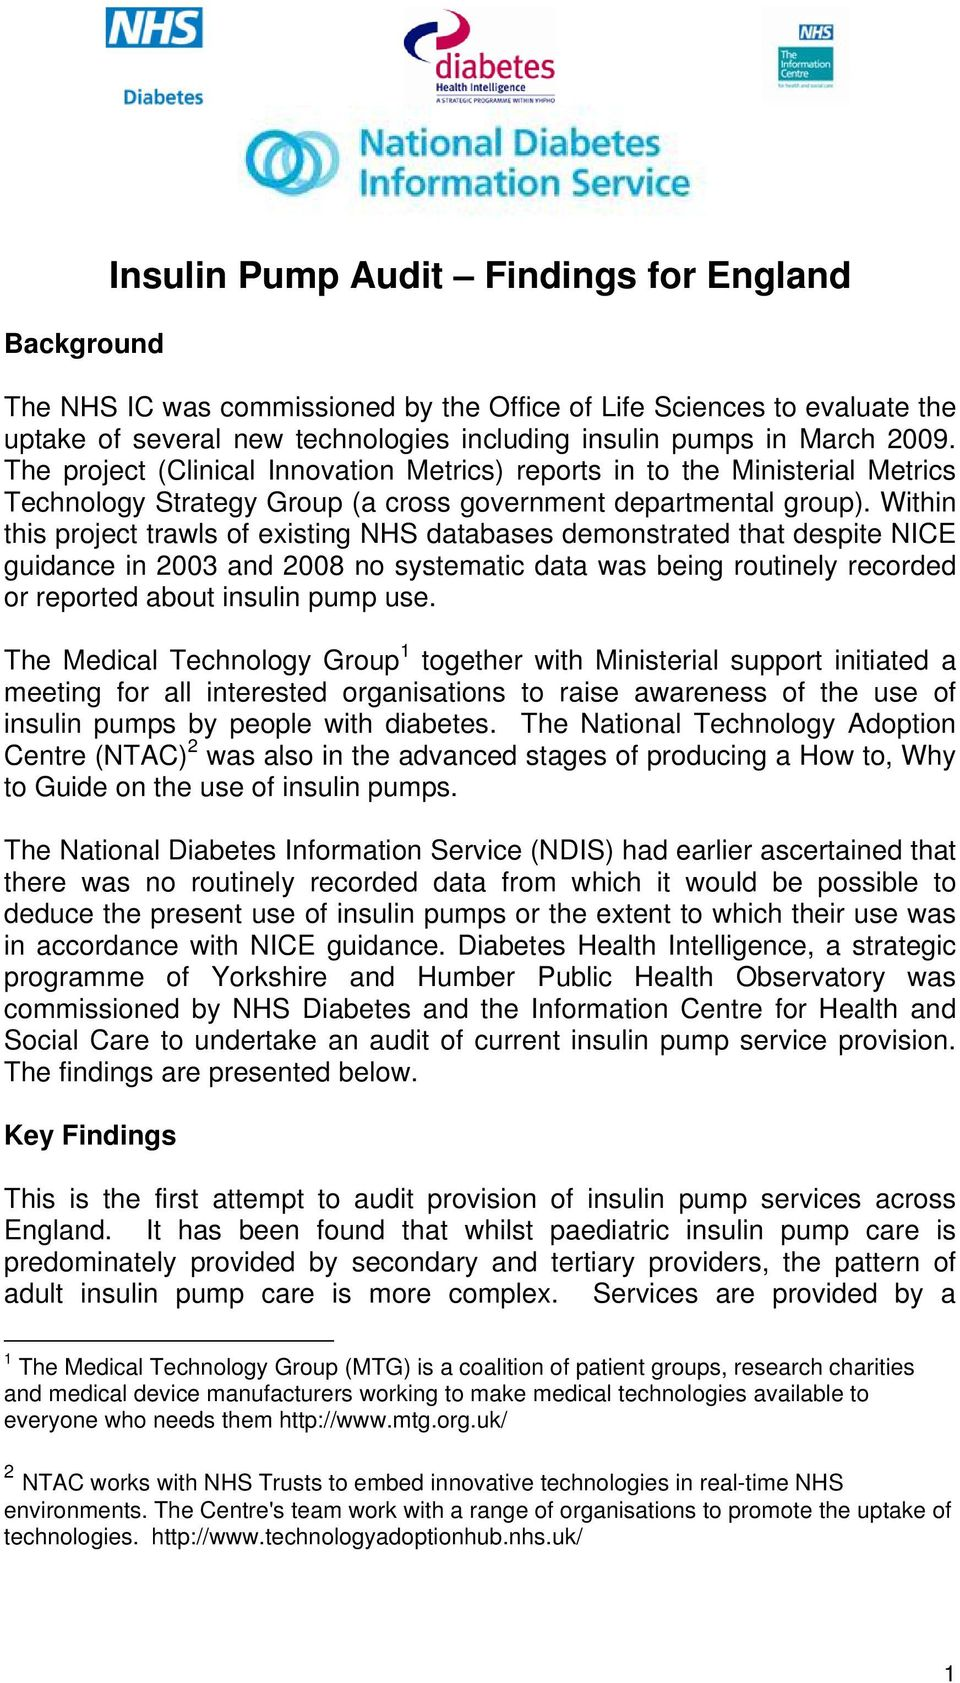 Within this project trawls of existing NHS databases demonstrated that despite NICE guidance in 2003 and 2008 no systematic data was being routinely recorded or reported about insulin pump use.